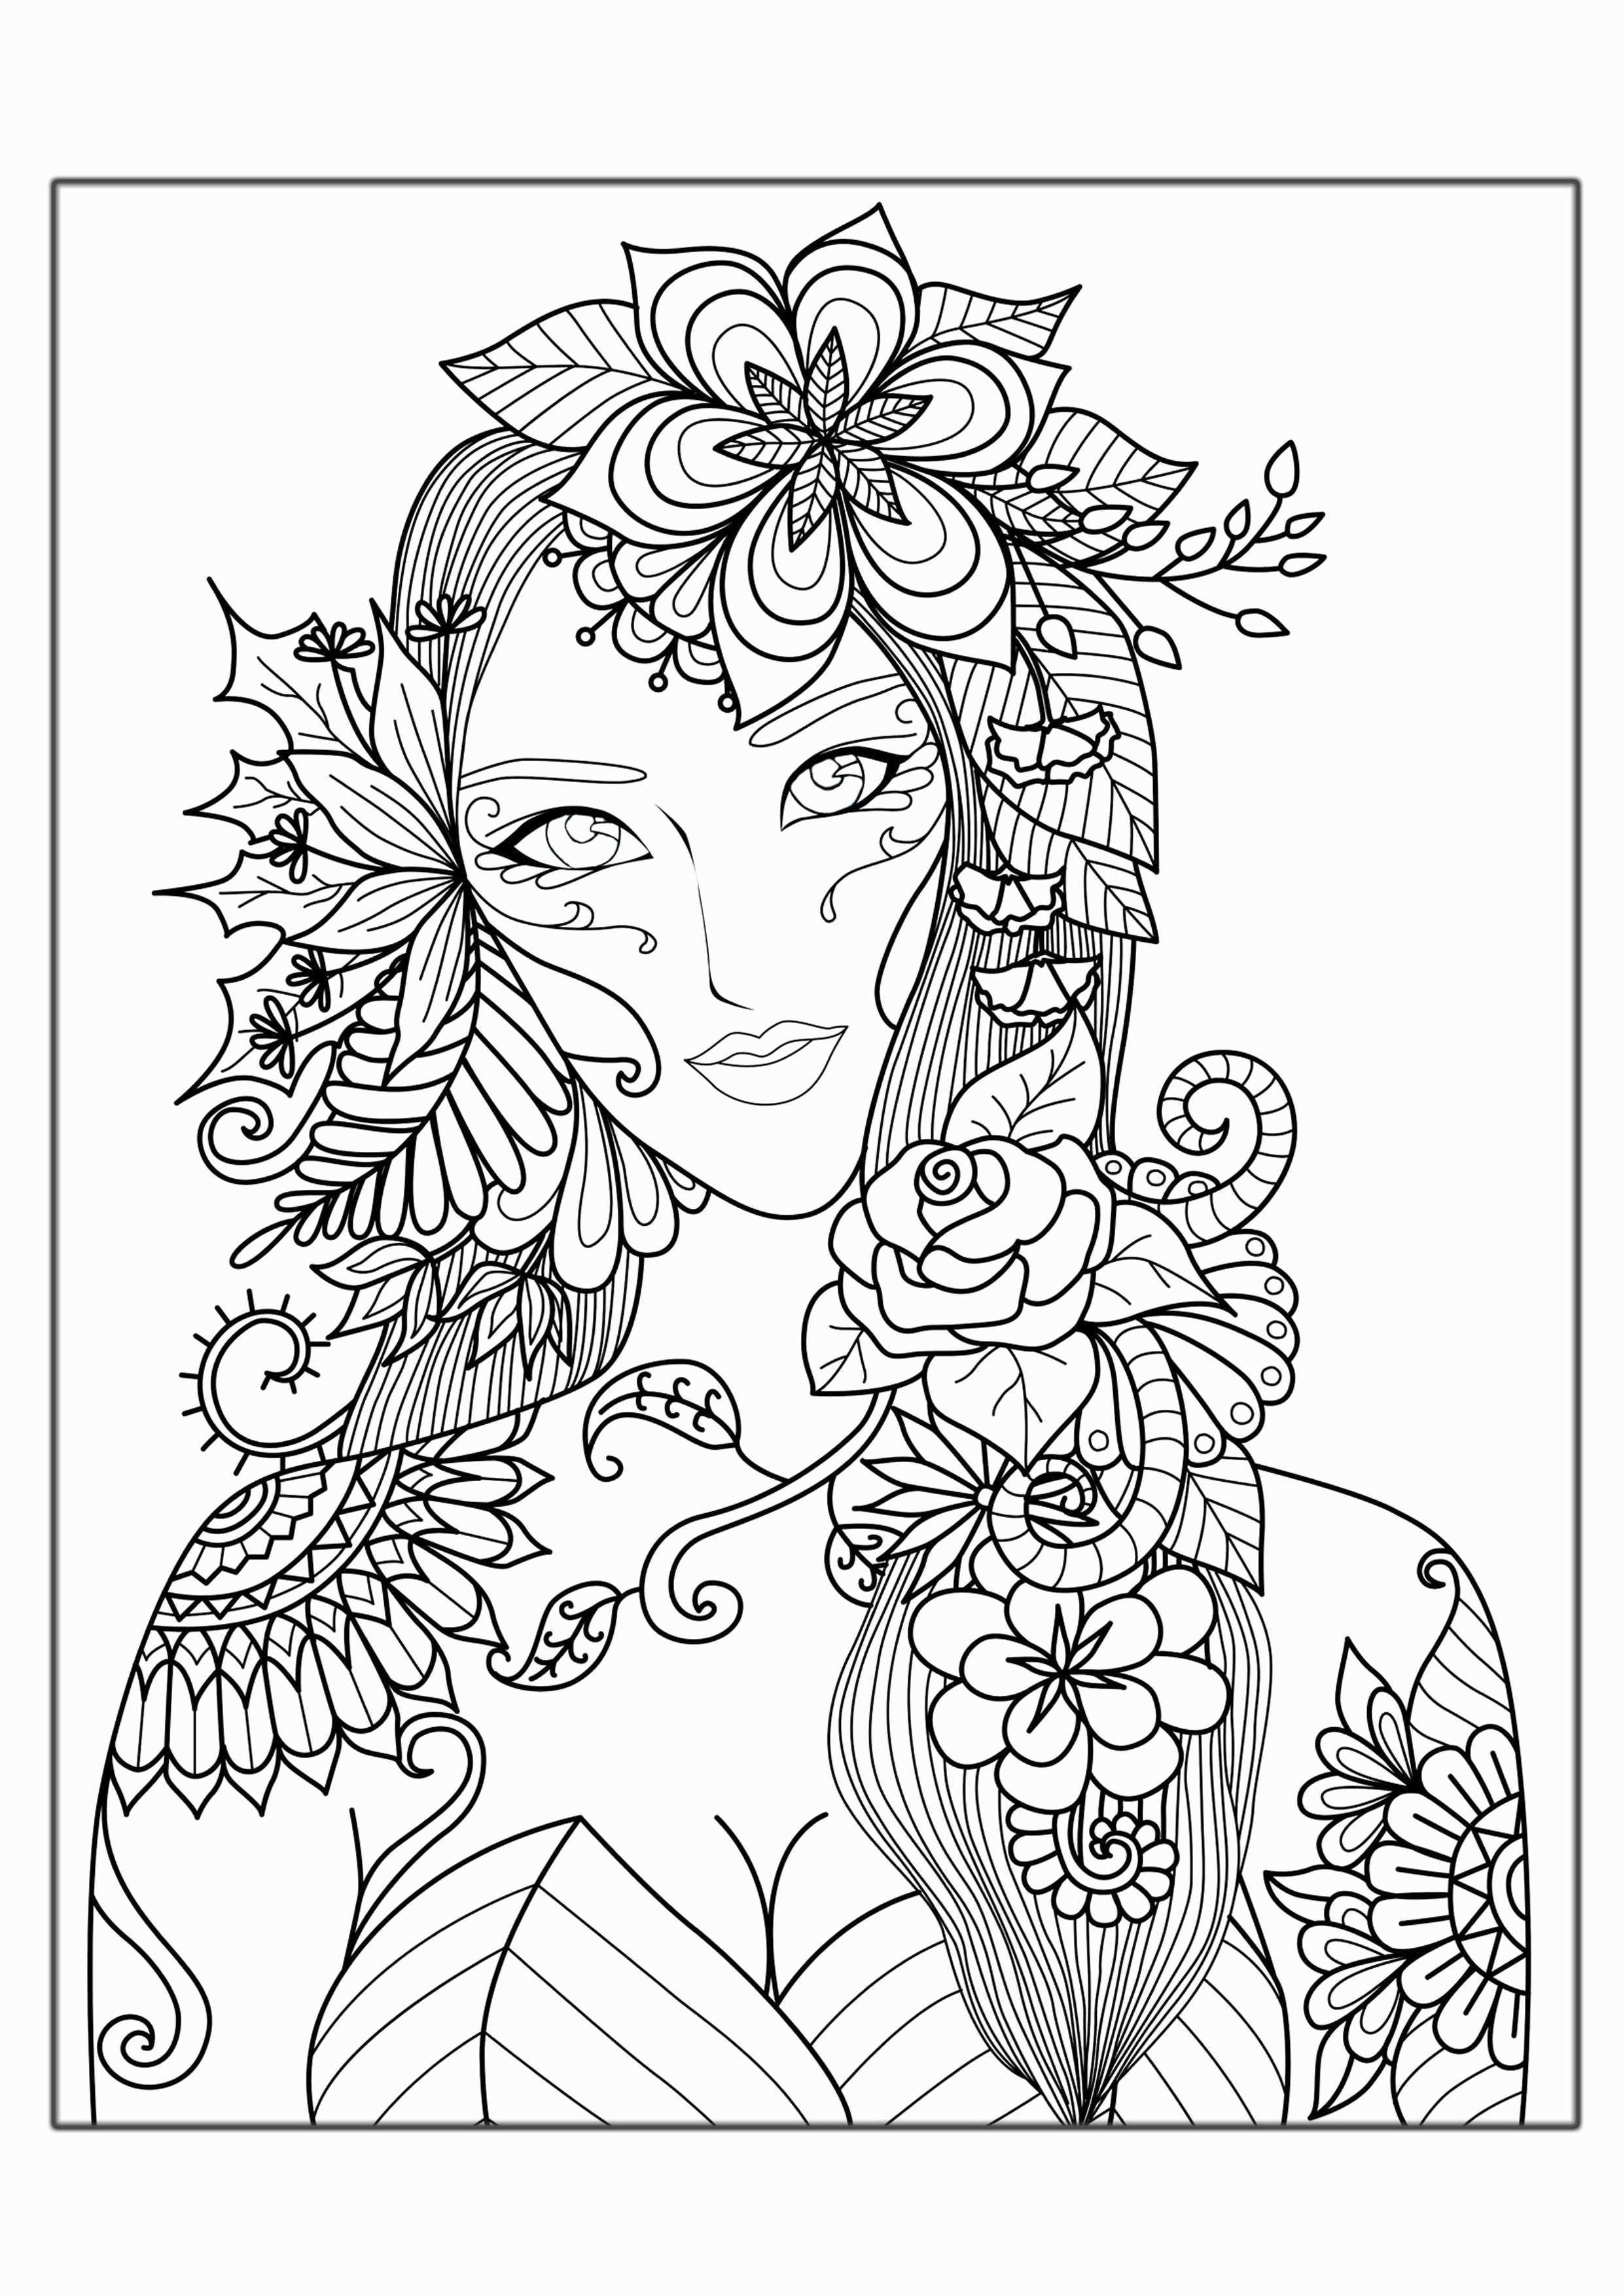 Free Downloadable Art Prints Fresh Free Downloadable Coloring Pages Awesome Cute Printable Coloring